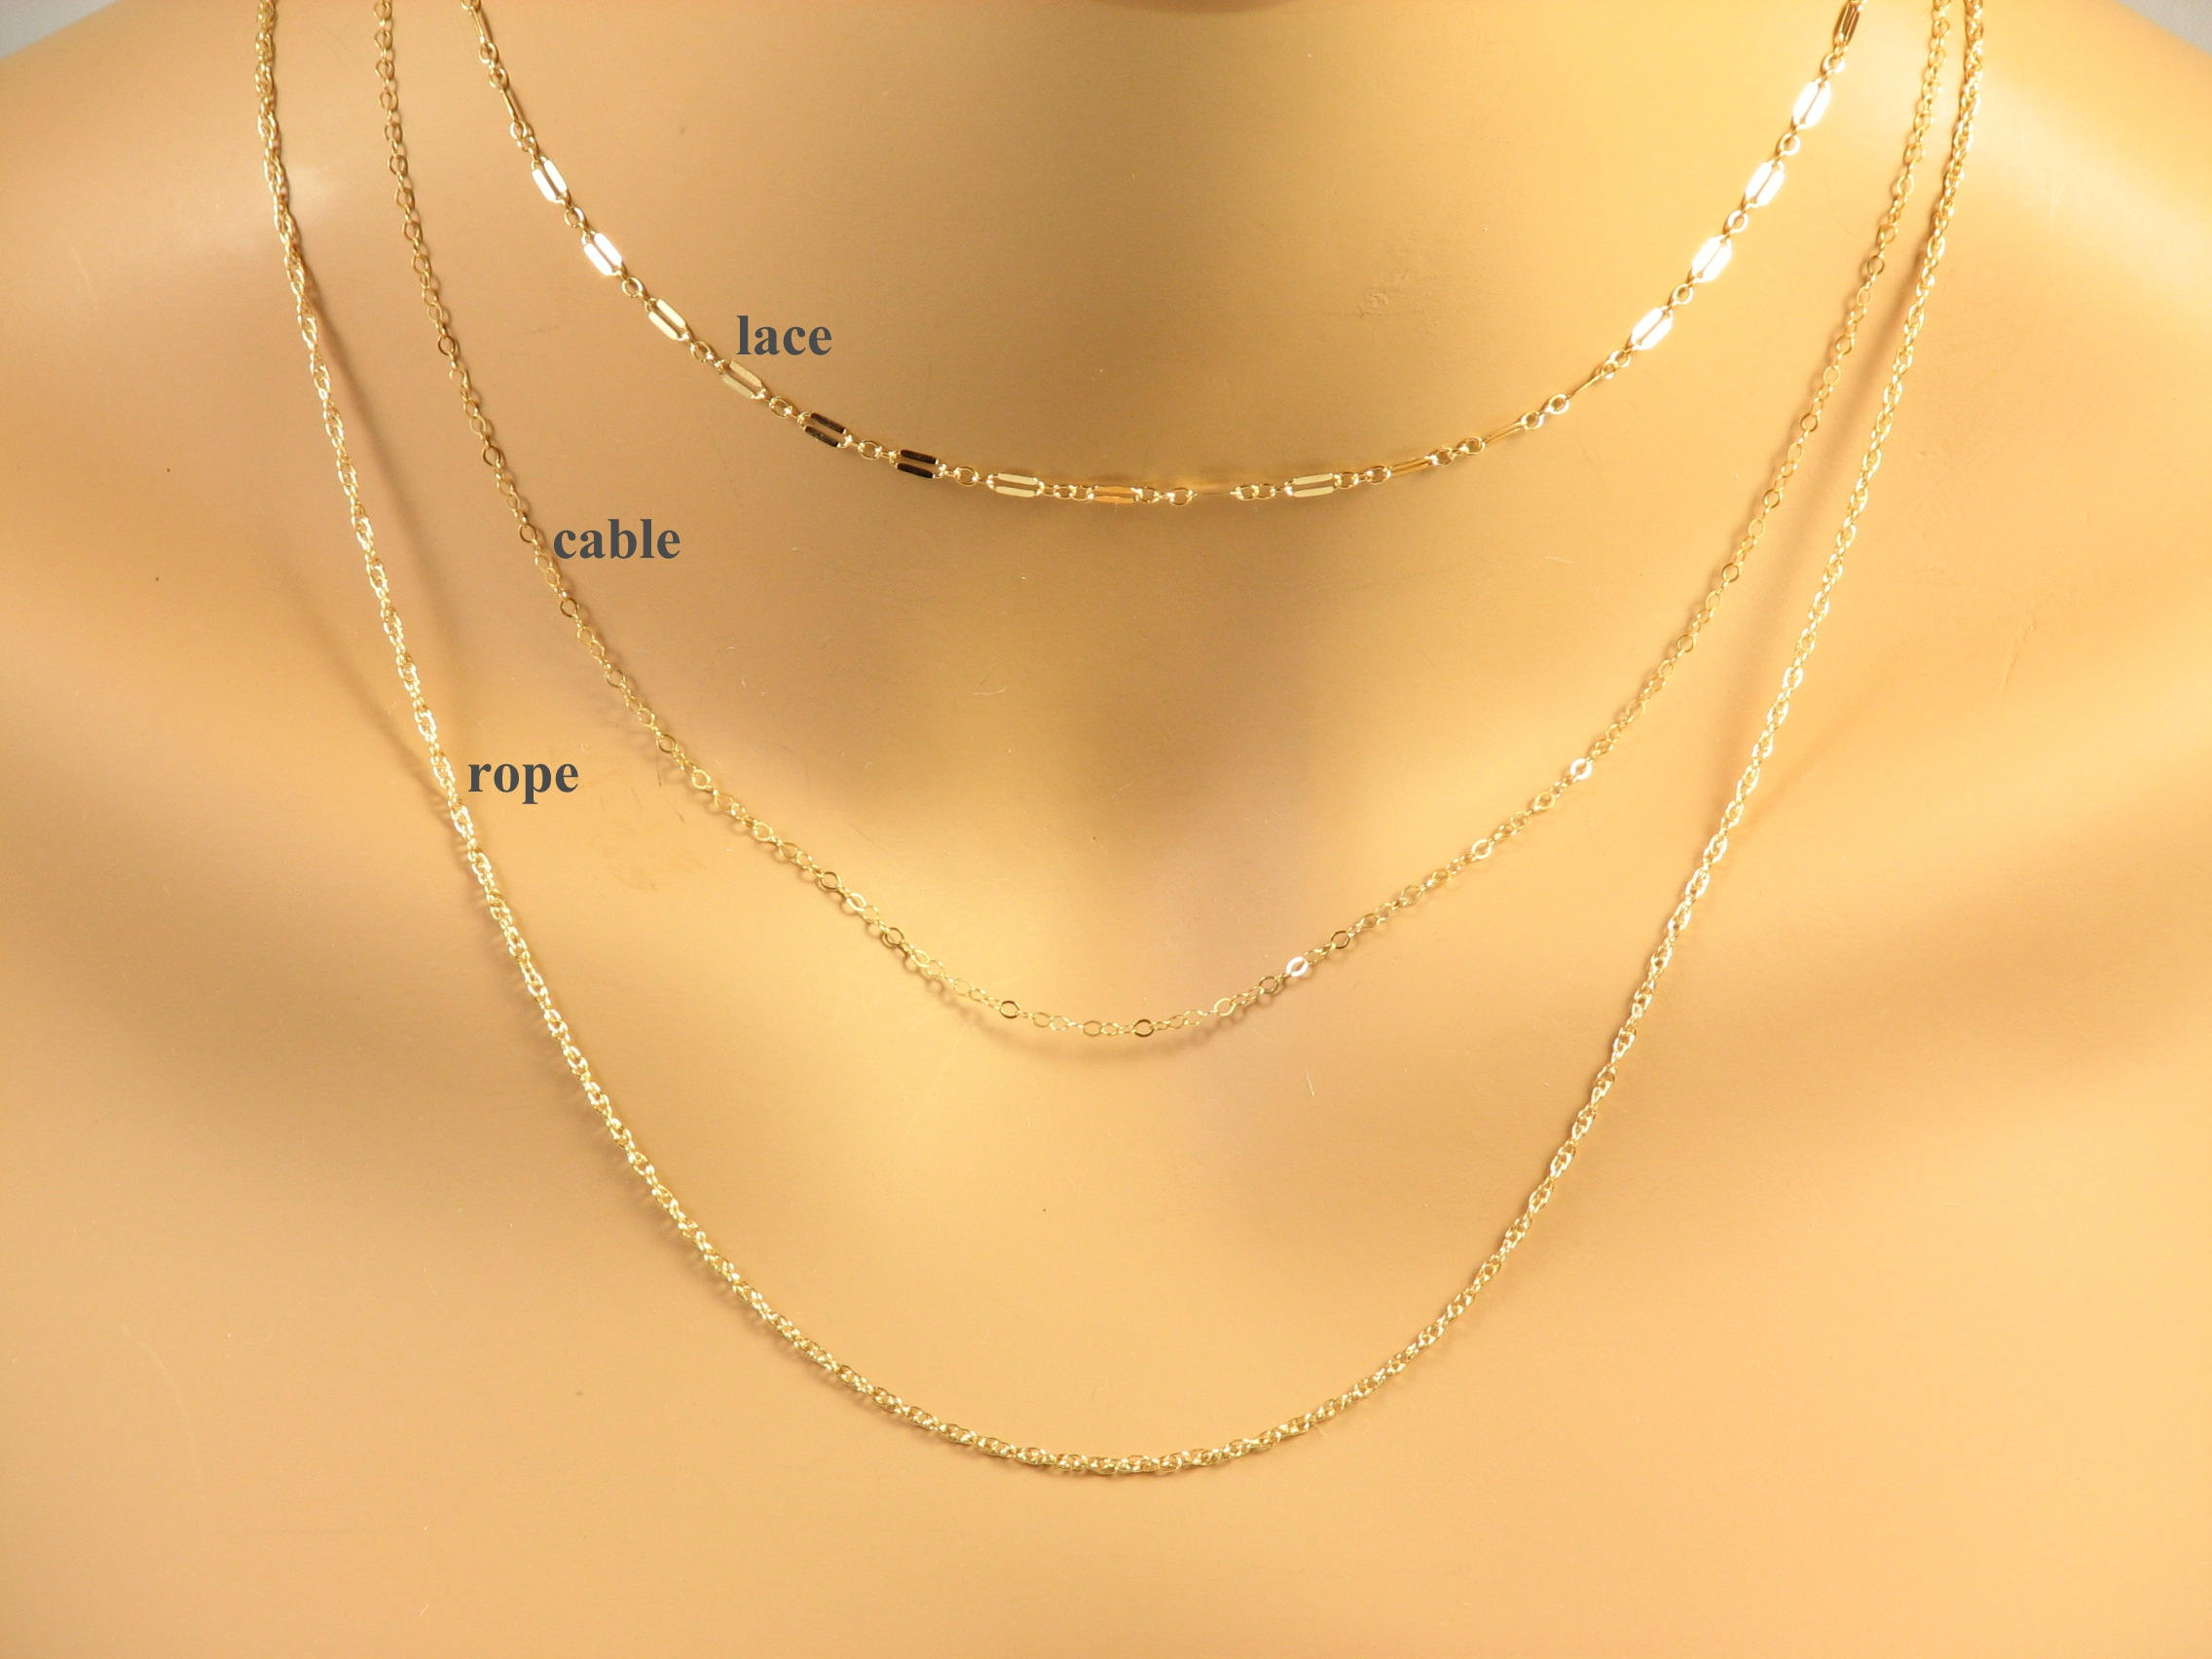 Dainty Chain Necklace, Lace Chain, Cable Chain, Rope Chain, Long Gold  Chain, Long Silver Chain, Understated Jewelry Regarding Recent Classic Cable Chain Necklaces (Gallery 21 of 25)